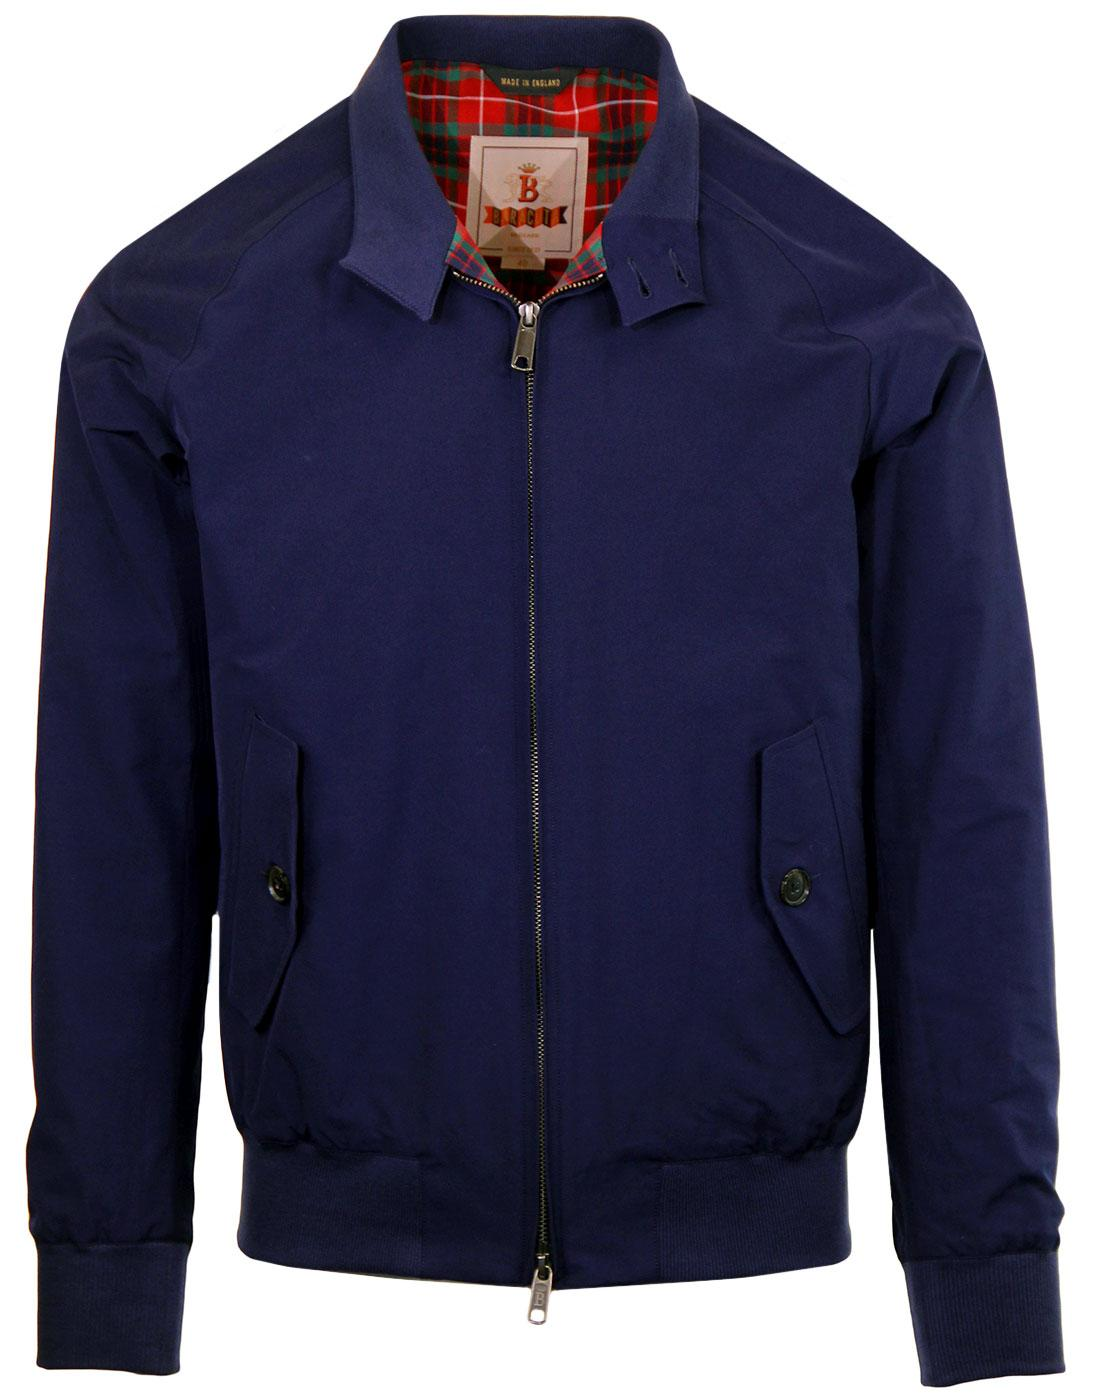 BARACUTA G9 Original Made in England Harrington I